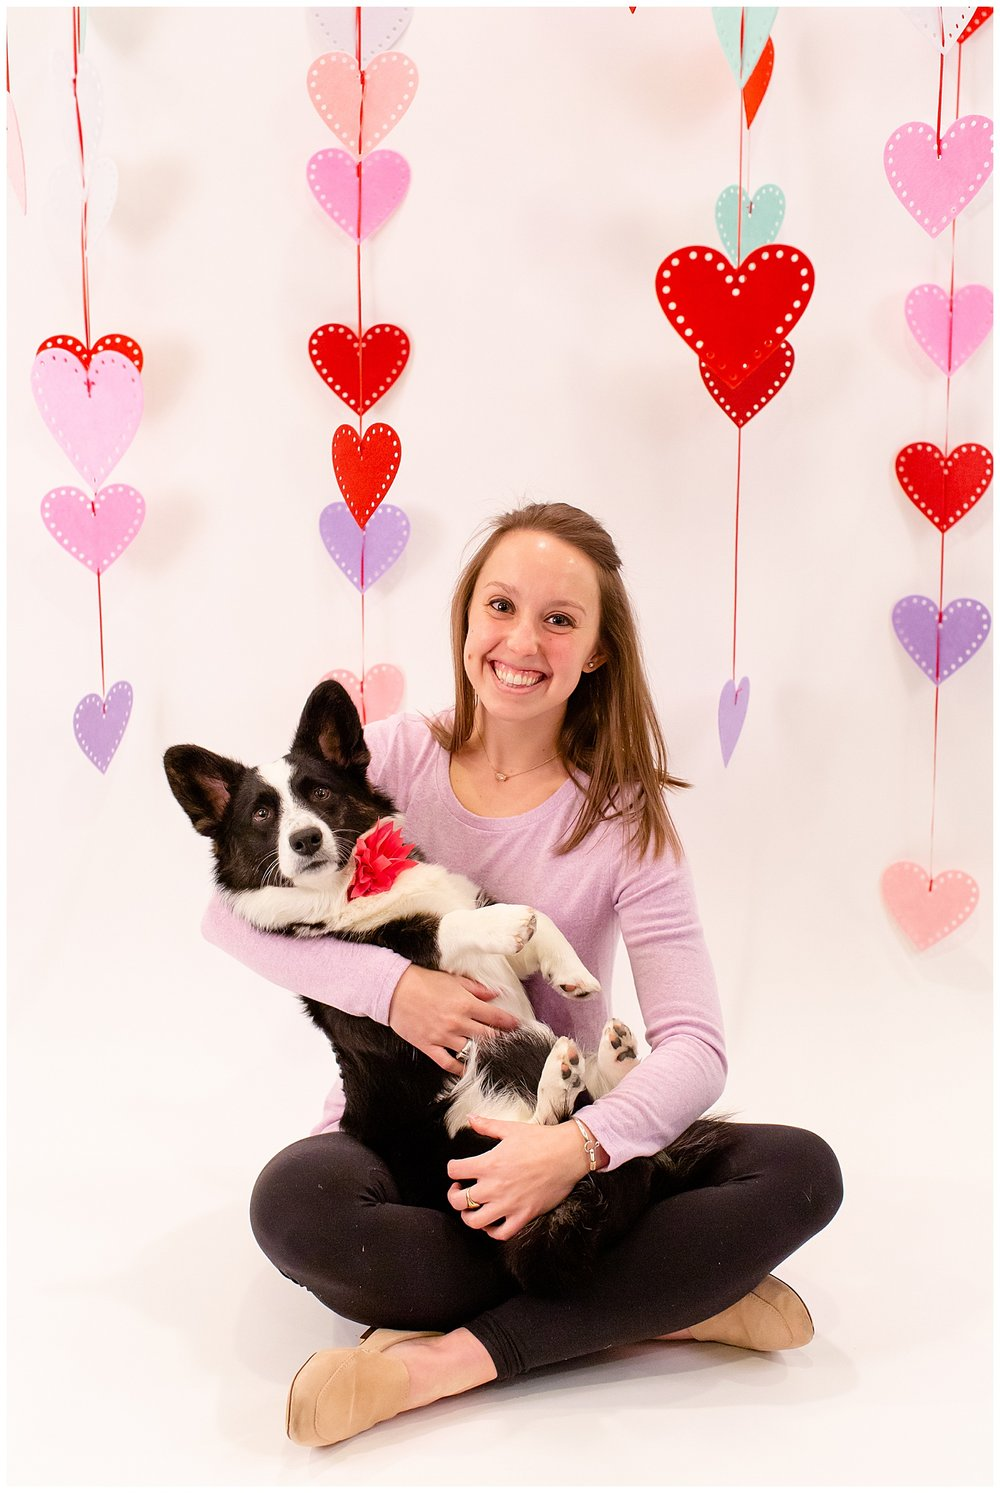 emily-belson-photography-couple-dog-valentine-photoshoot-06.jpg